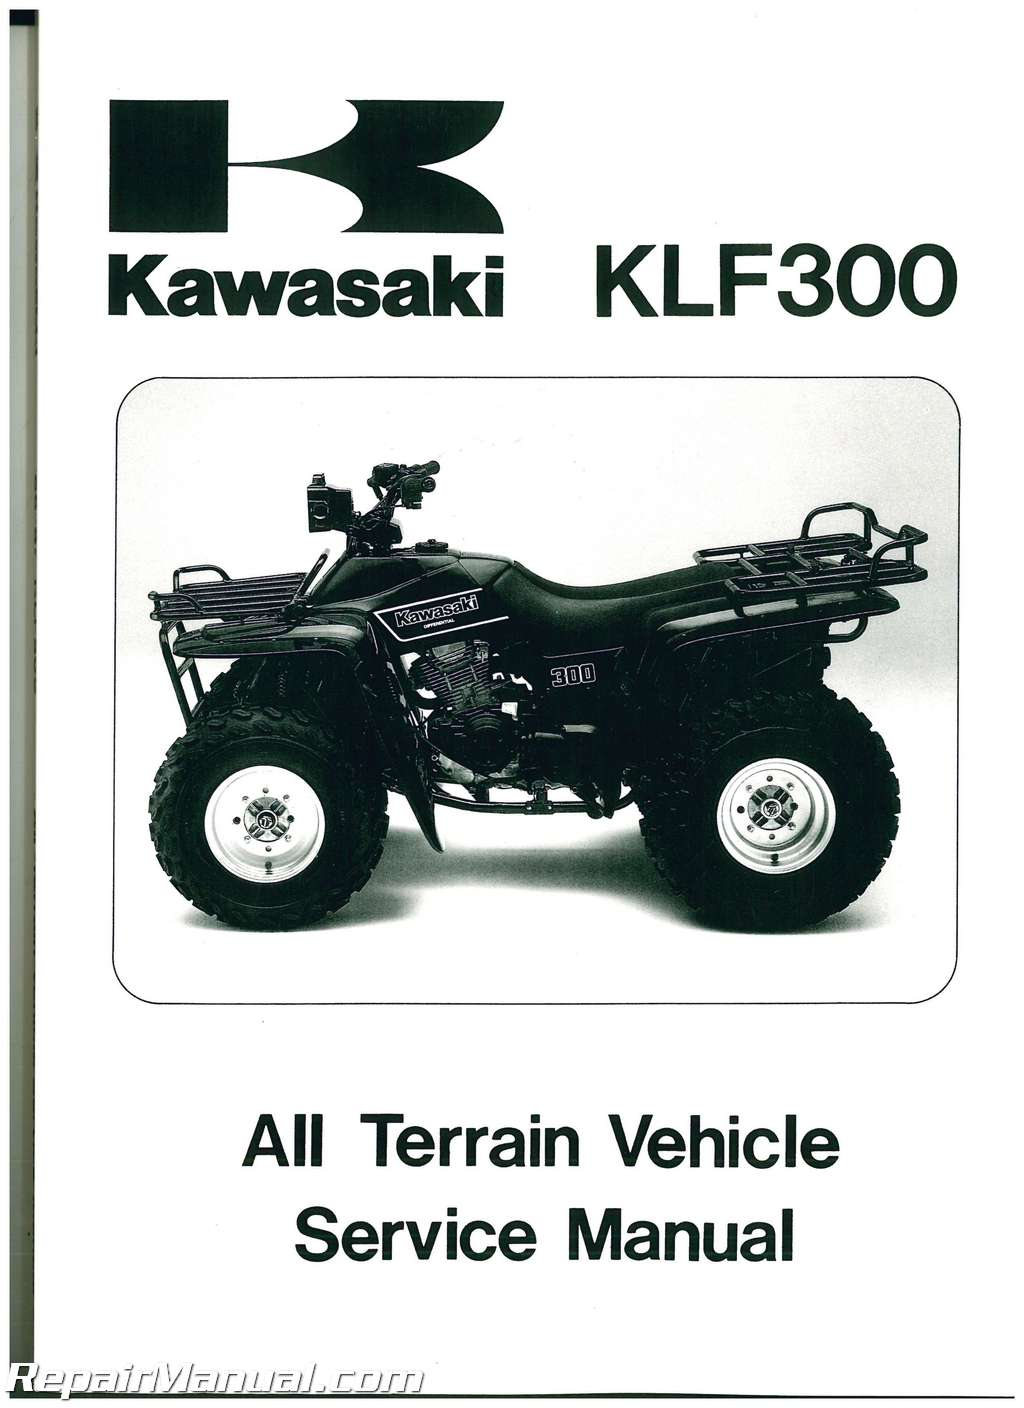 Pdf 6786 Klf 300 Atv Service Manual 2019 Ebook Library Wiring Diagram For Kawasaki Bayou 220 1986 1987 Klf300